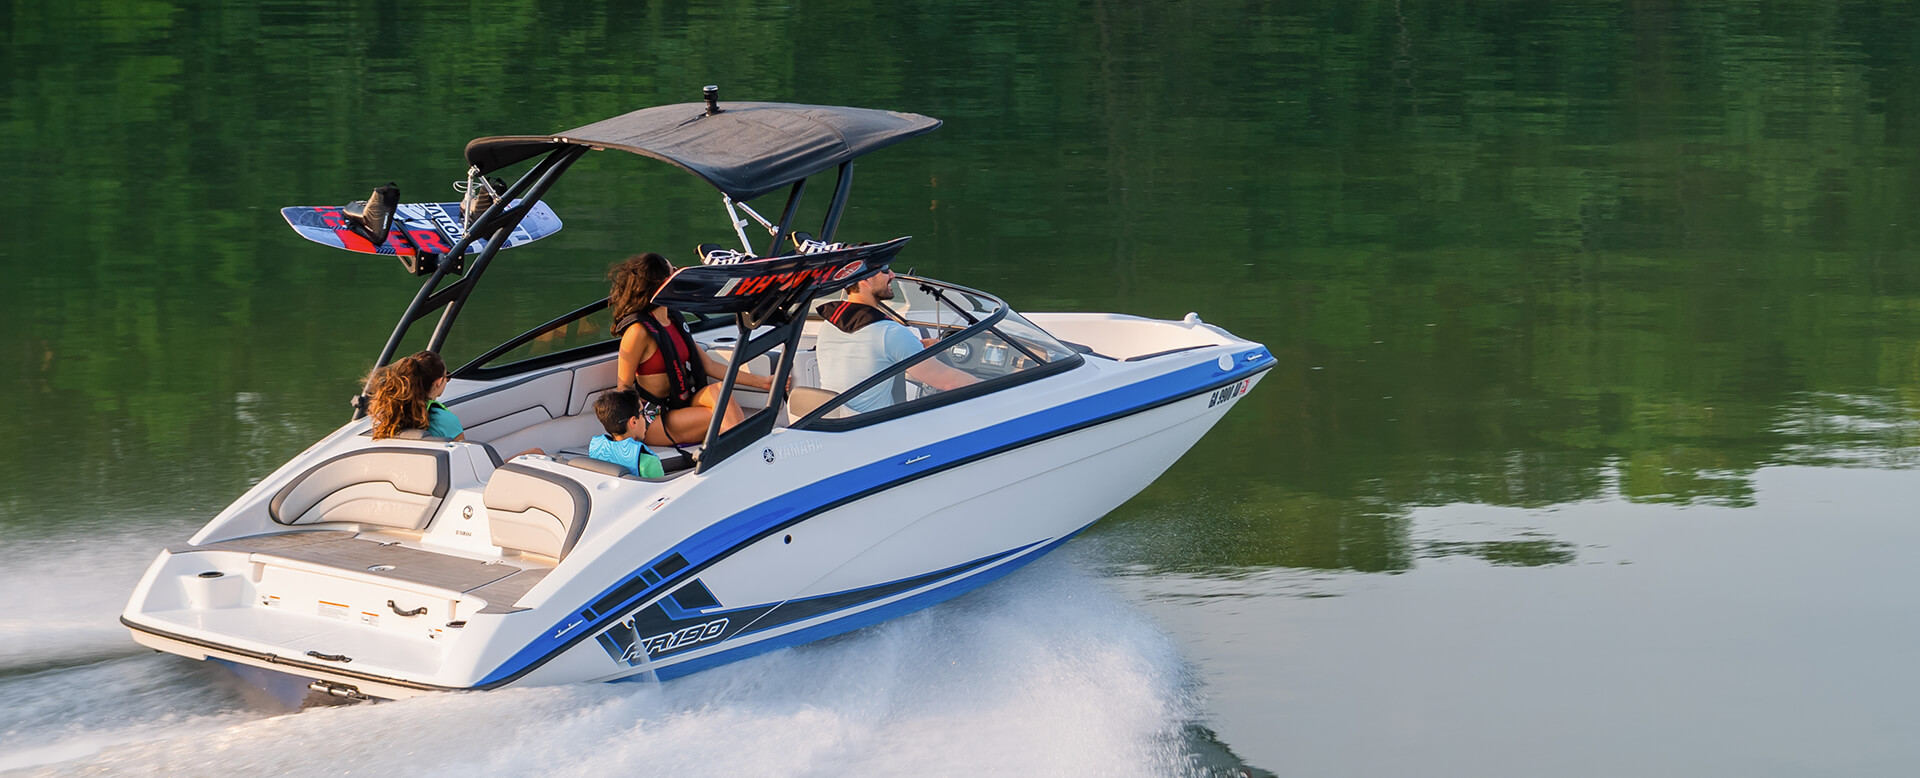 yamaha-boat-ar-190-2019-white-blue-family-driving-wakeboards-1